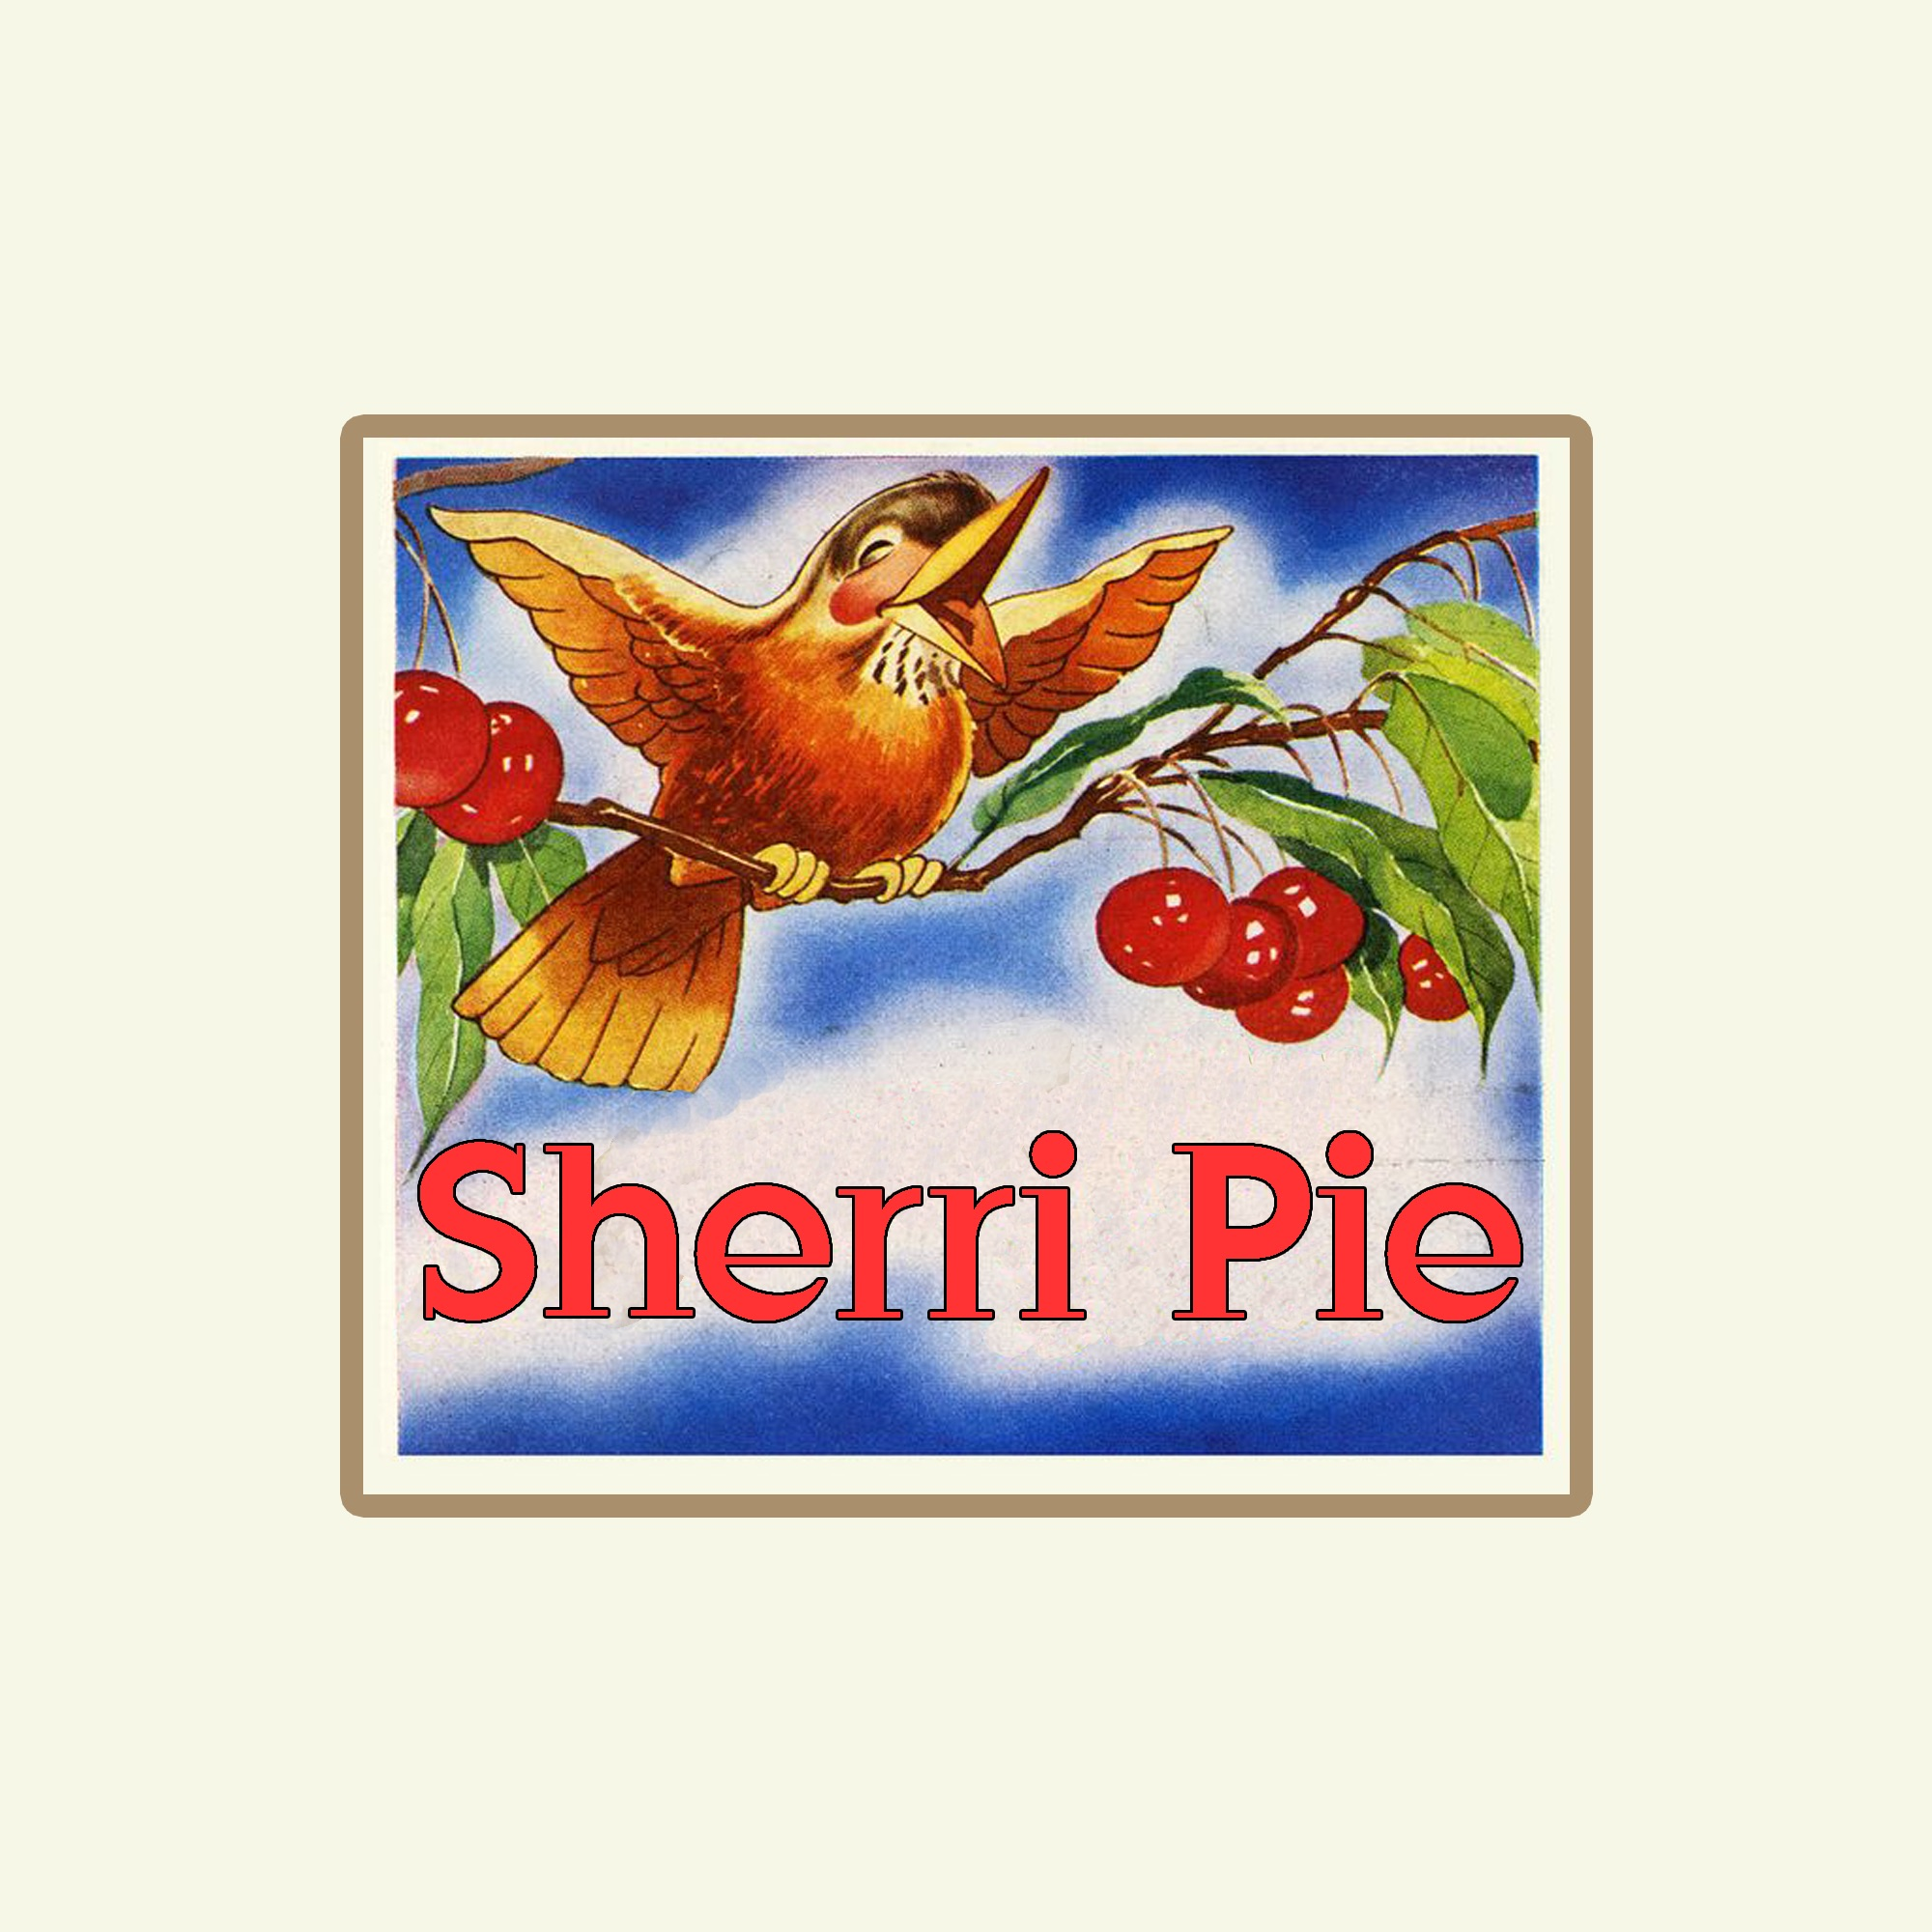 Sherri pie Entertainment